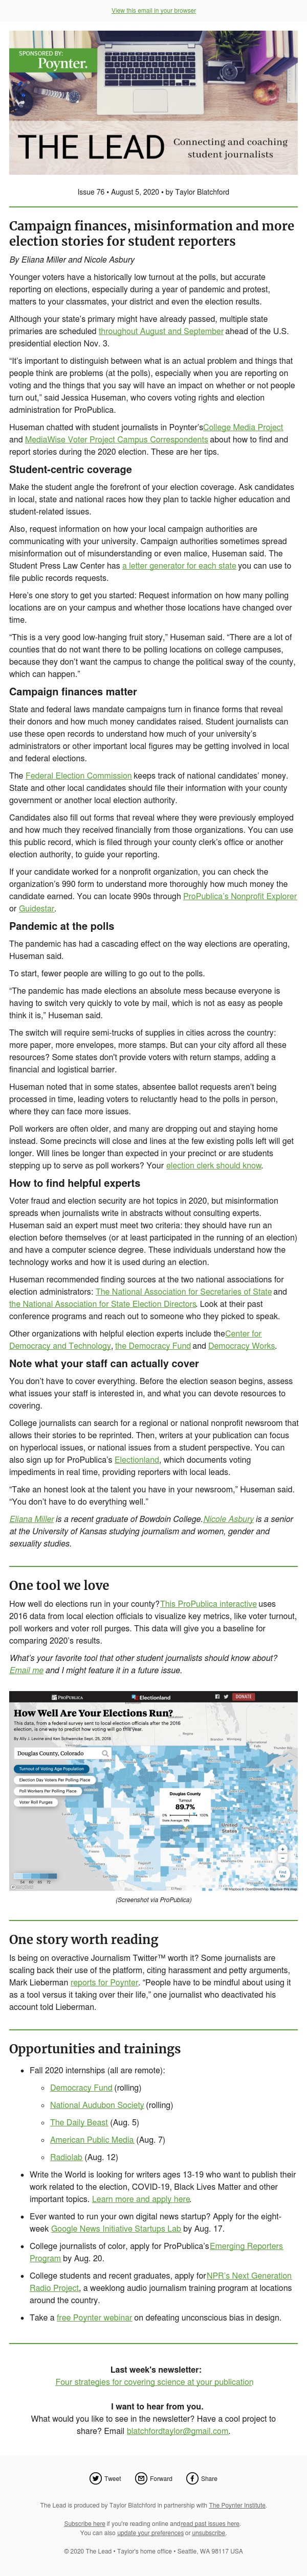 Election resources for student journalists, from campaign finances to misinformation